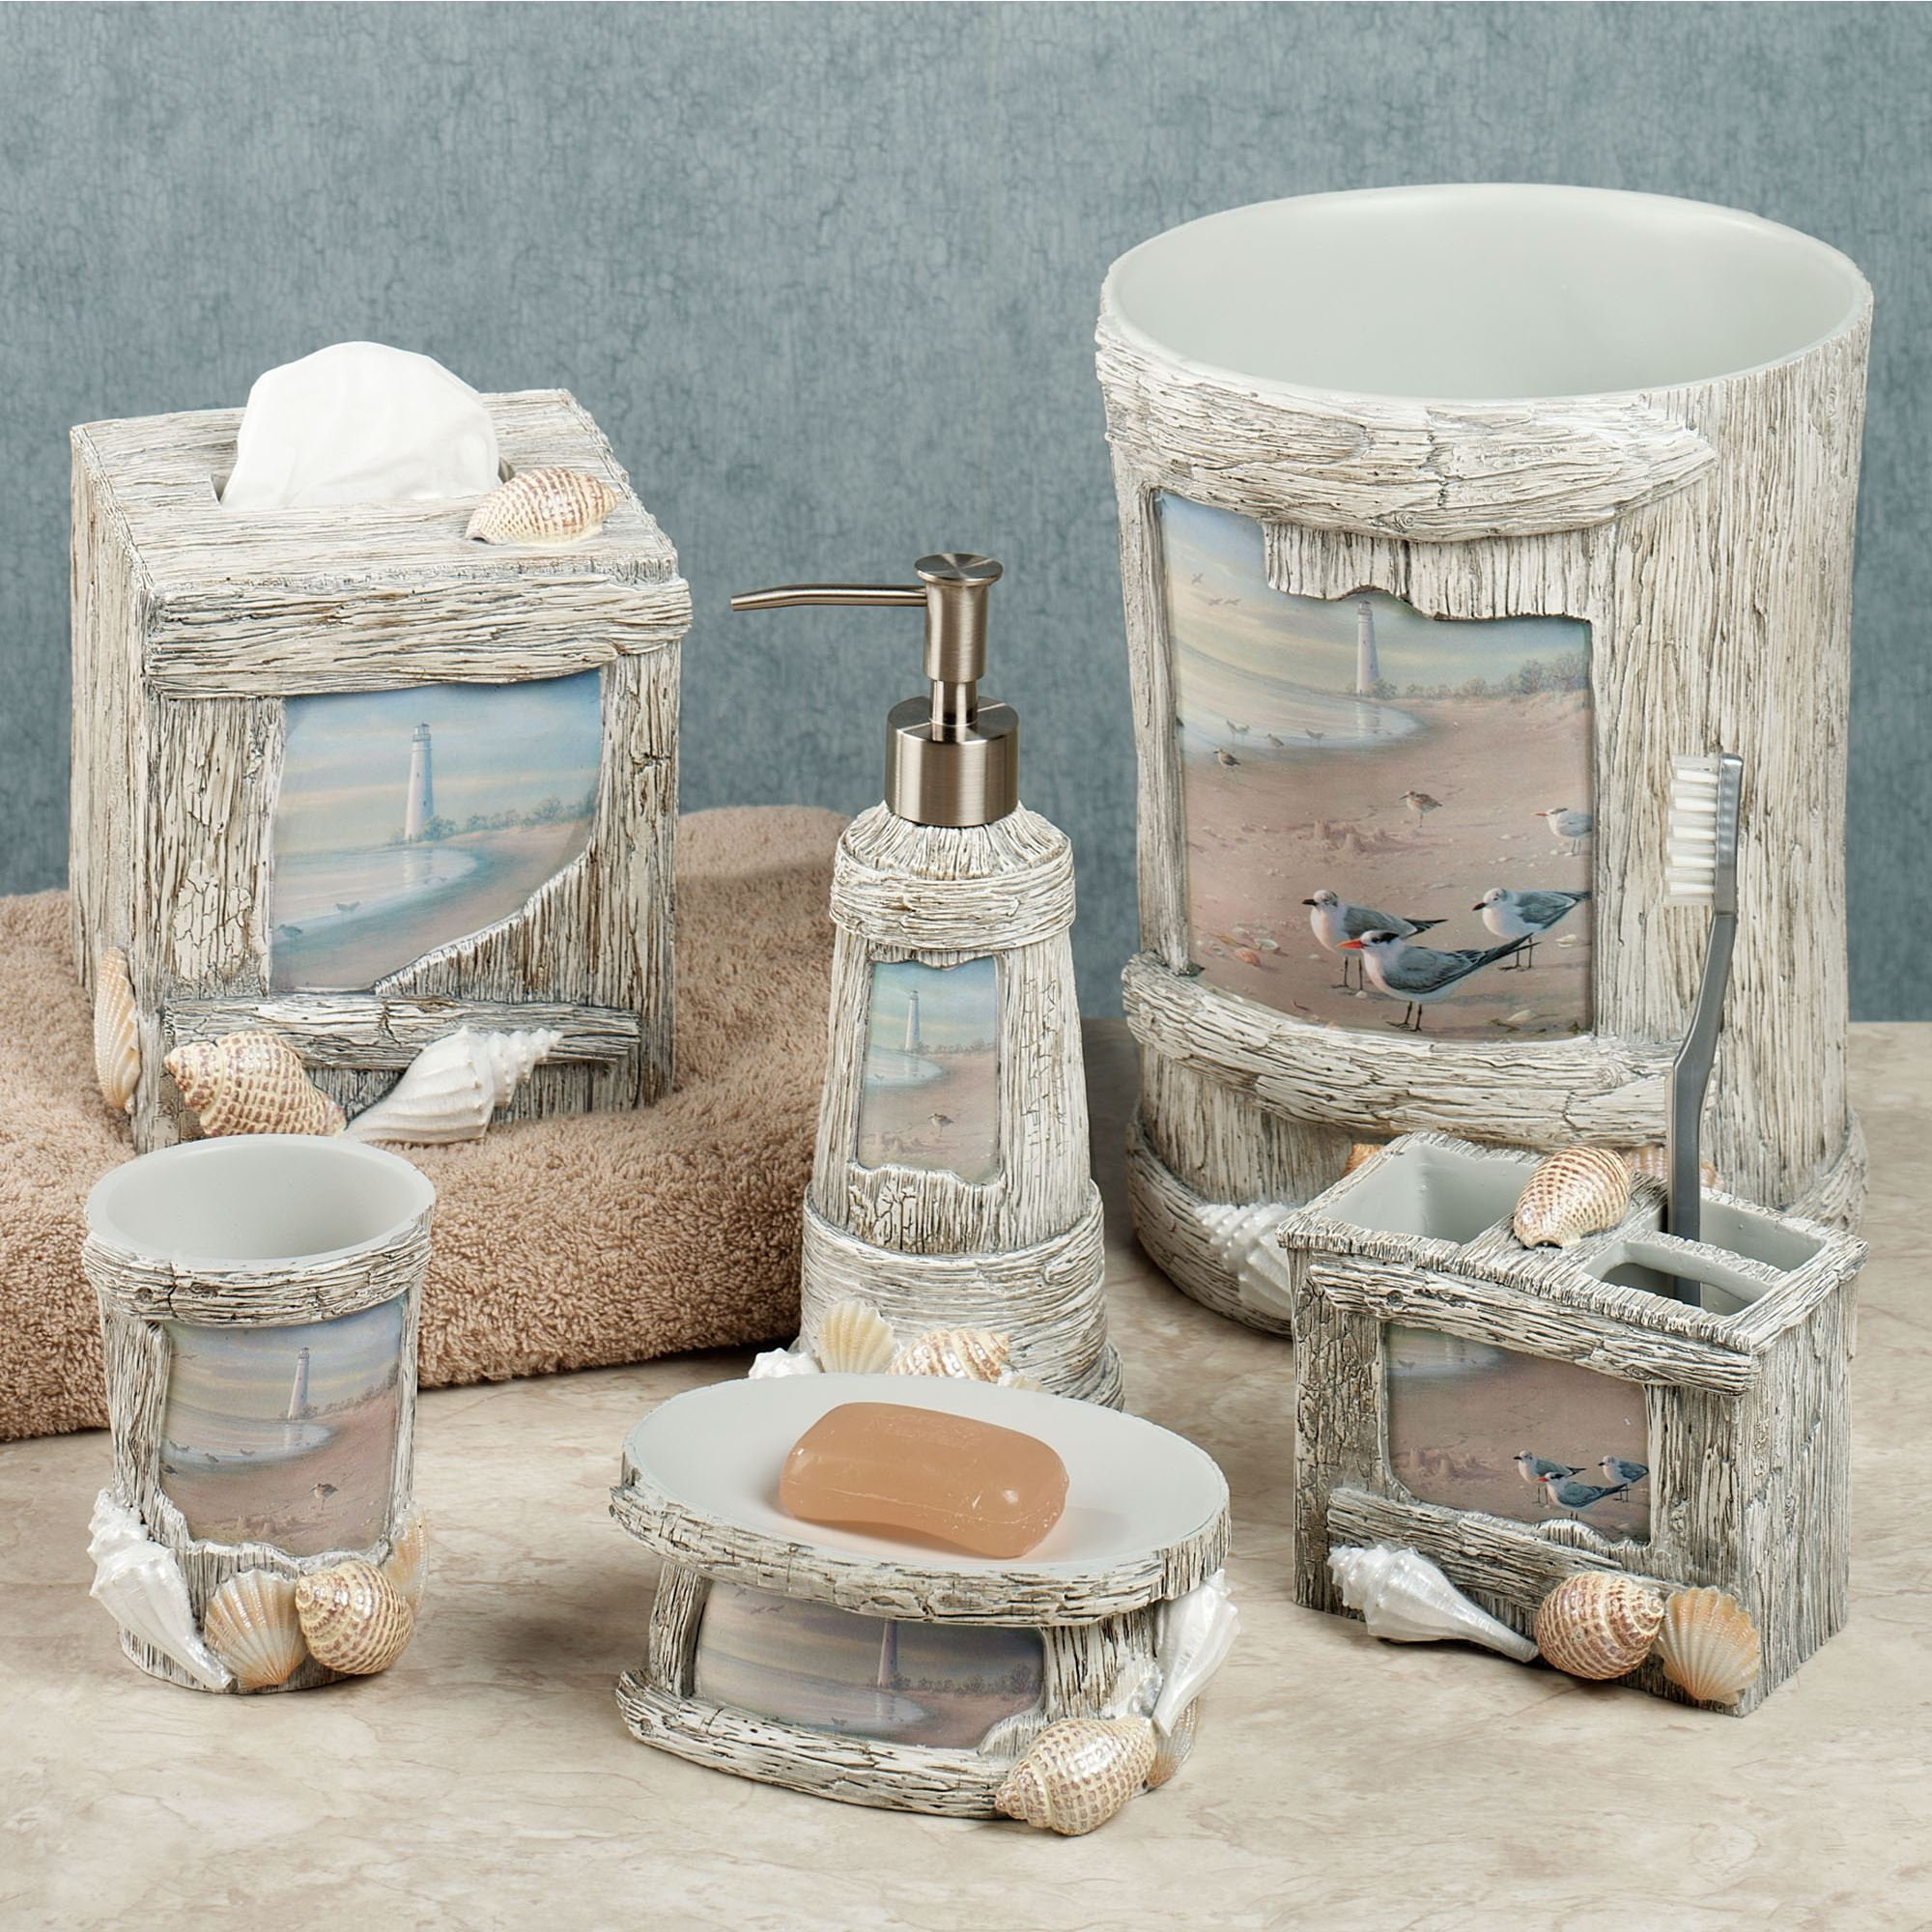 At the beach bath accessories for Seashell bathroom accessories